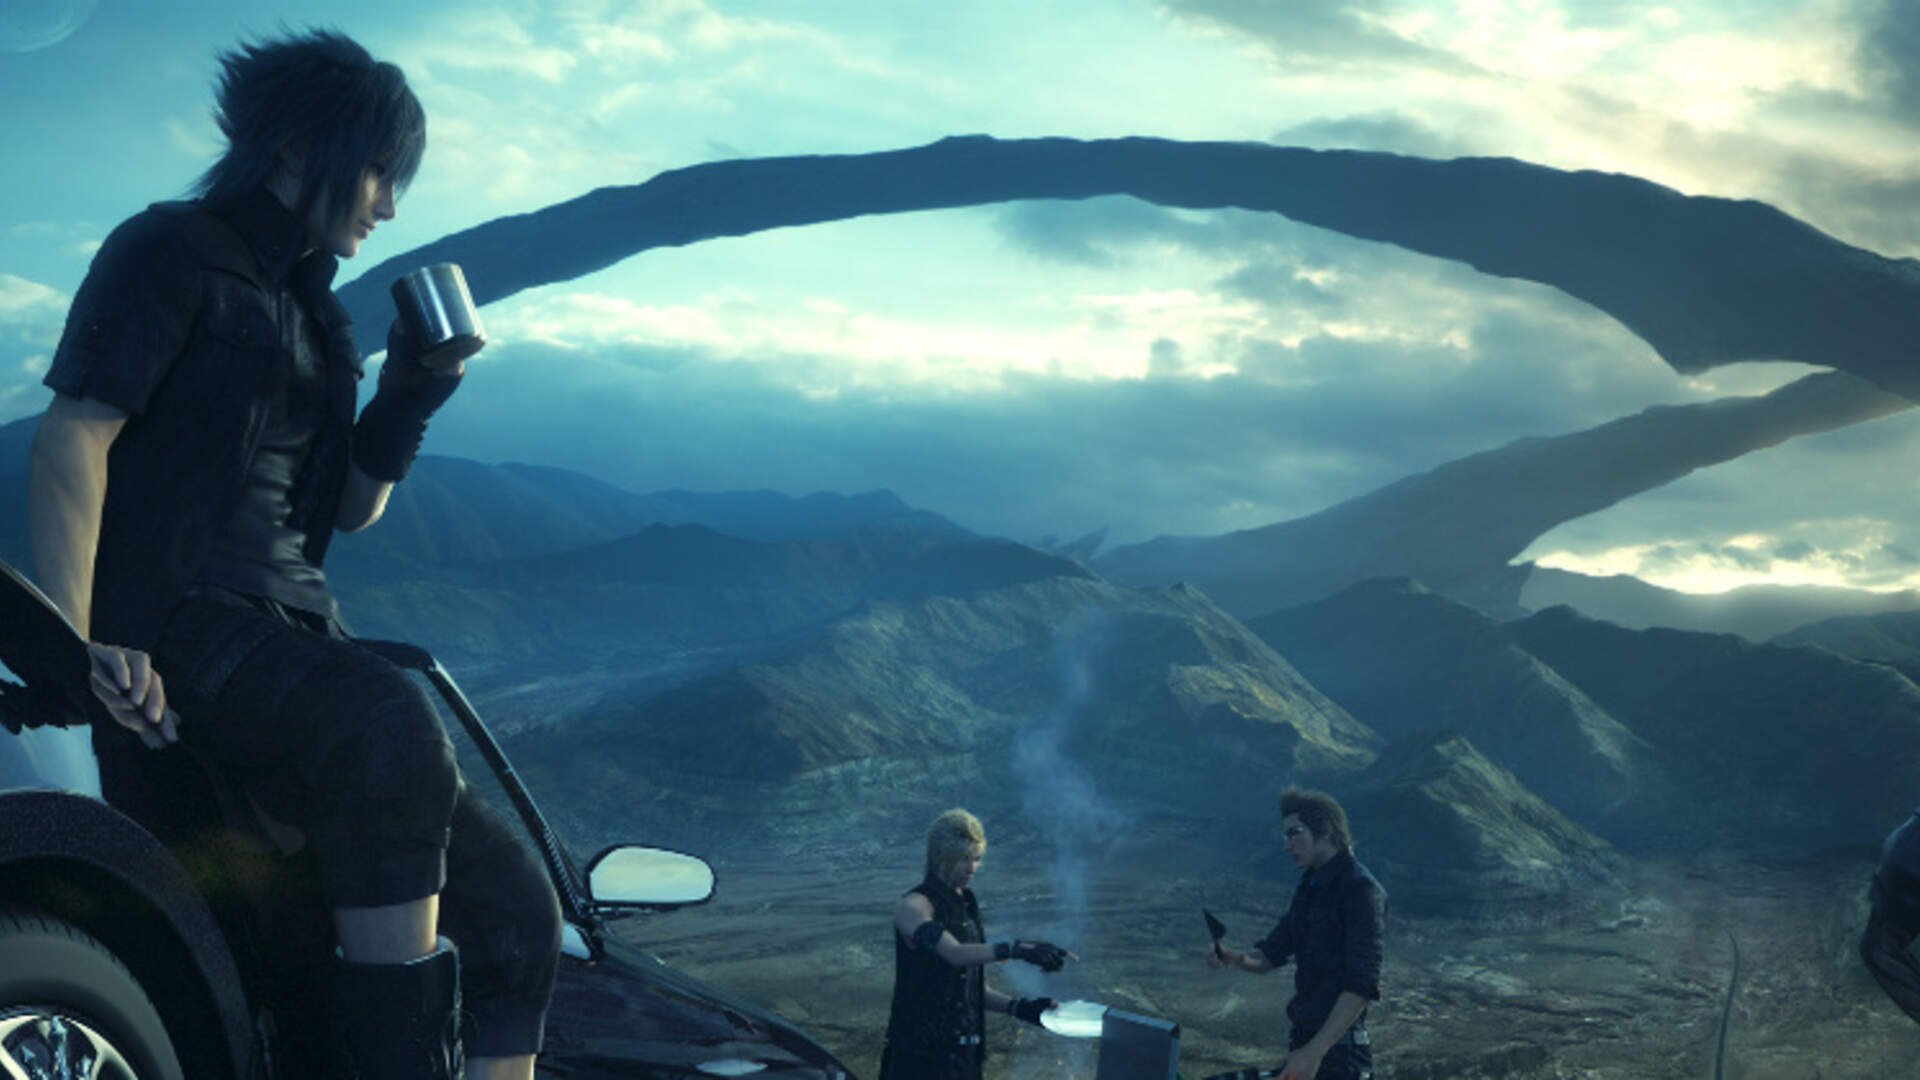 Final Fantasy XV's Lack of Core Female Characters Goes Against Tradition